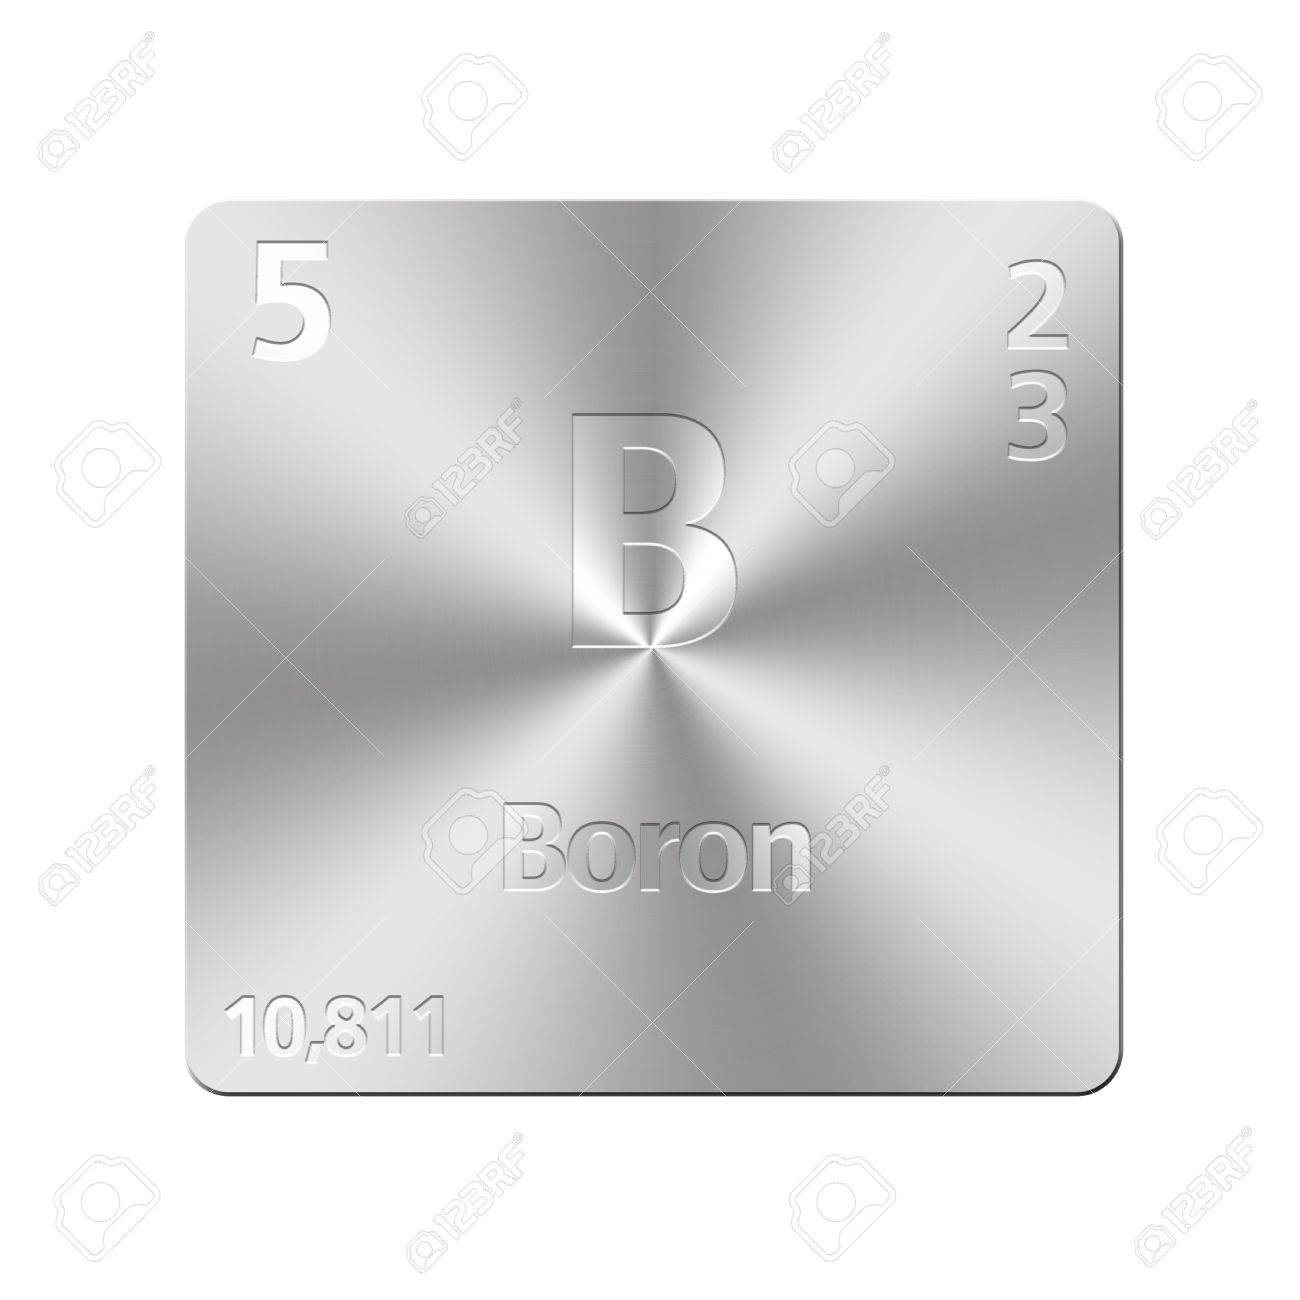 Isolated metal button with periodic table, Boron Stock Photo - 15972826